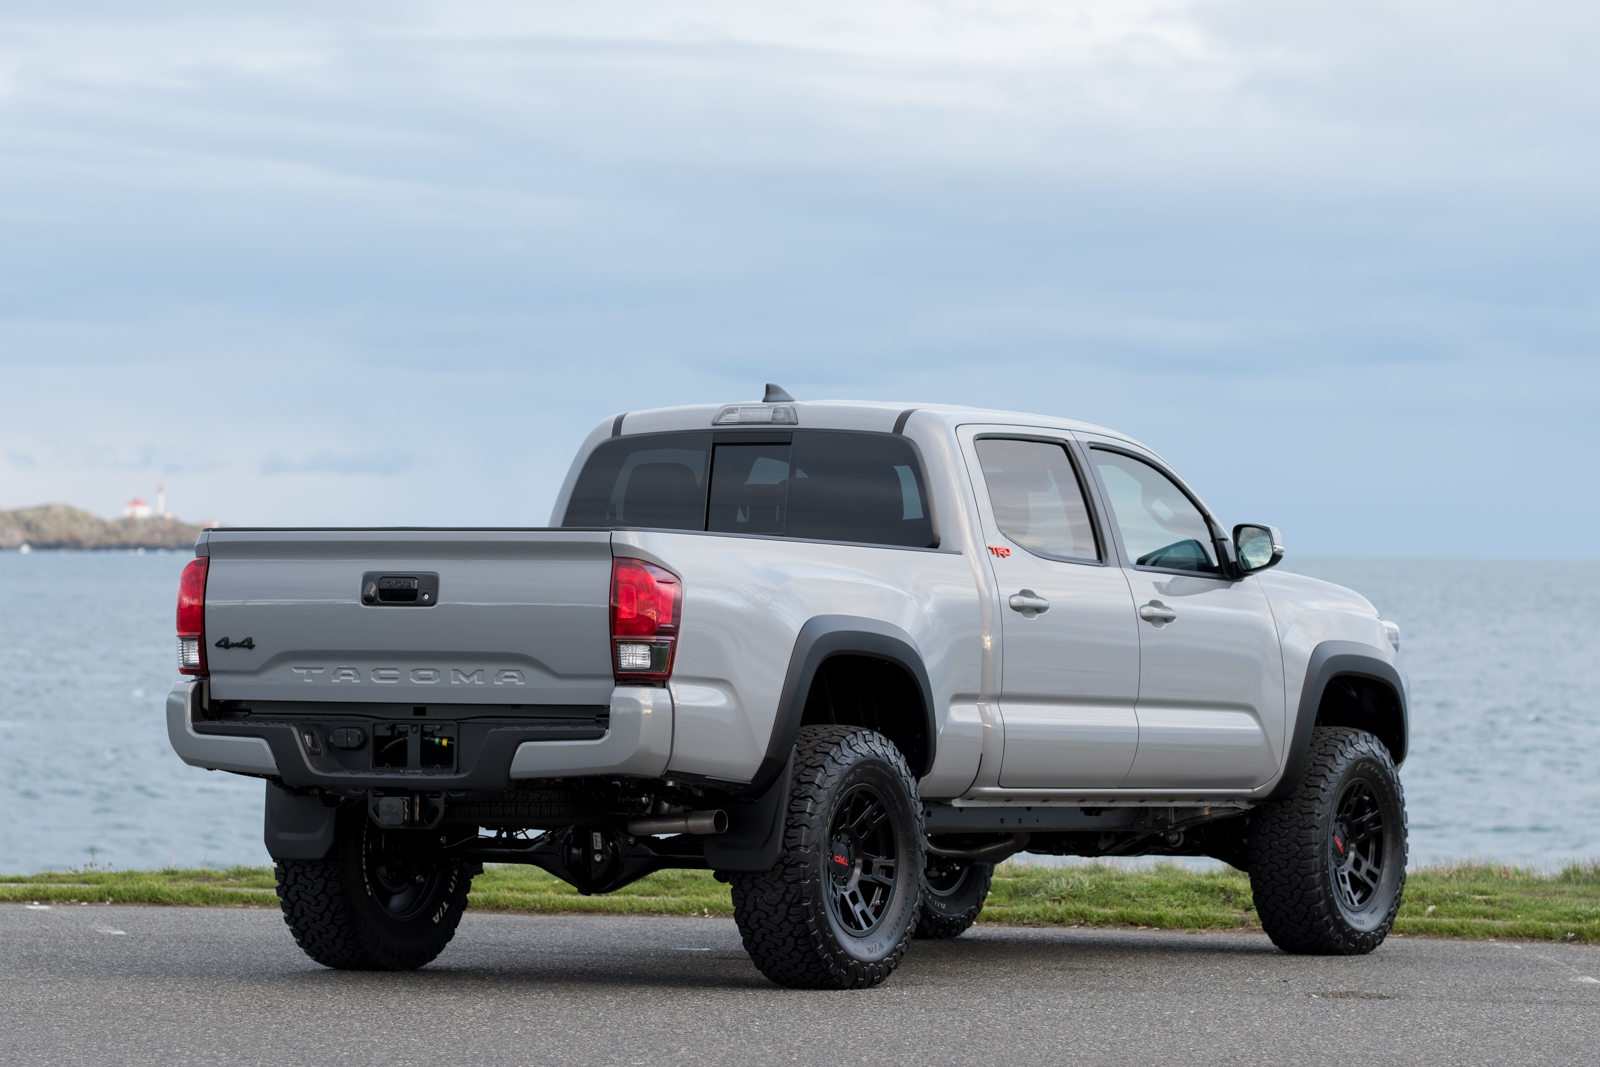 Toyota Tacoma 4x4 For Sale | New Car Release And Reviews